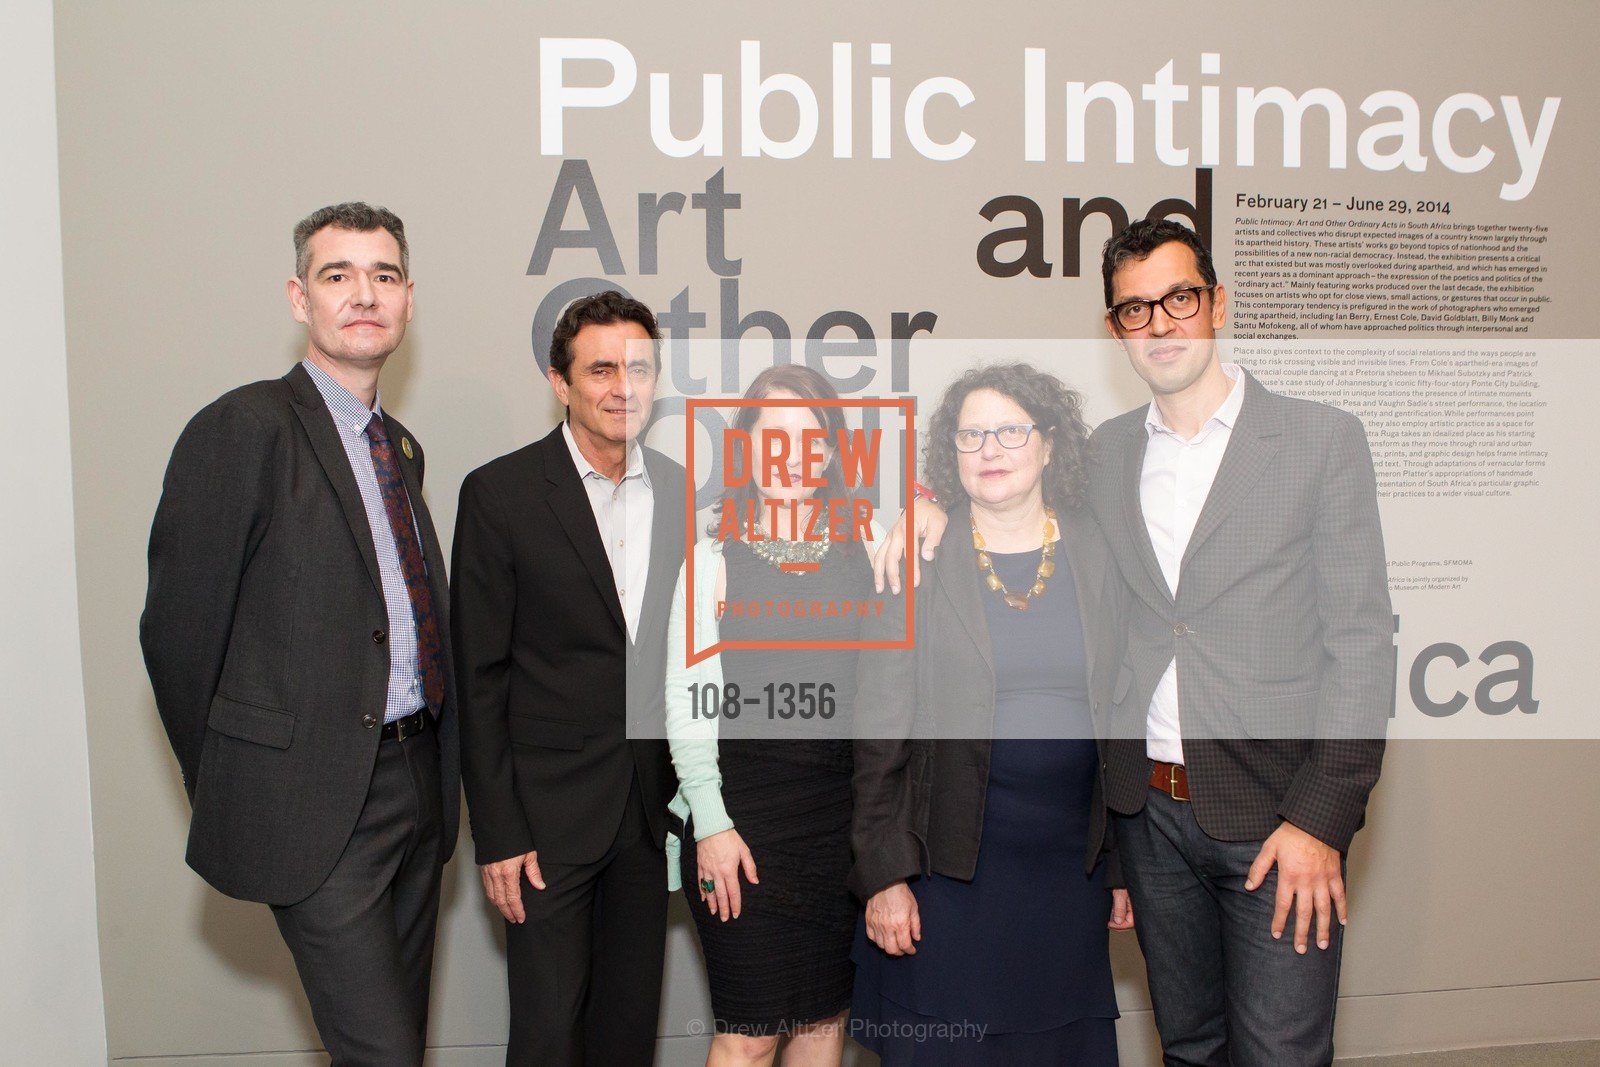 Frank Smigiel, Neal Benezra, Deborah Cullinan, Betti-Sue Hertz, Dominic Willston, Photo #108-1356